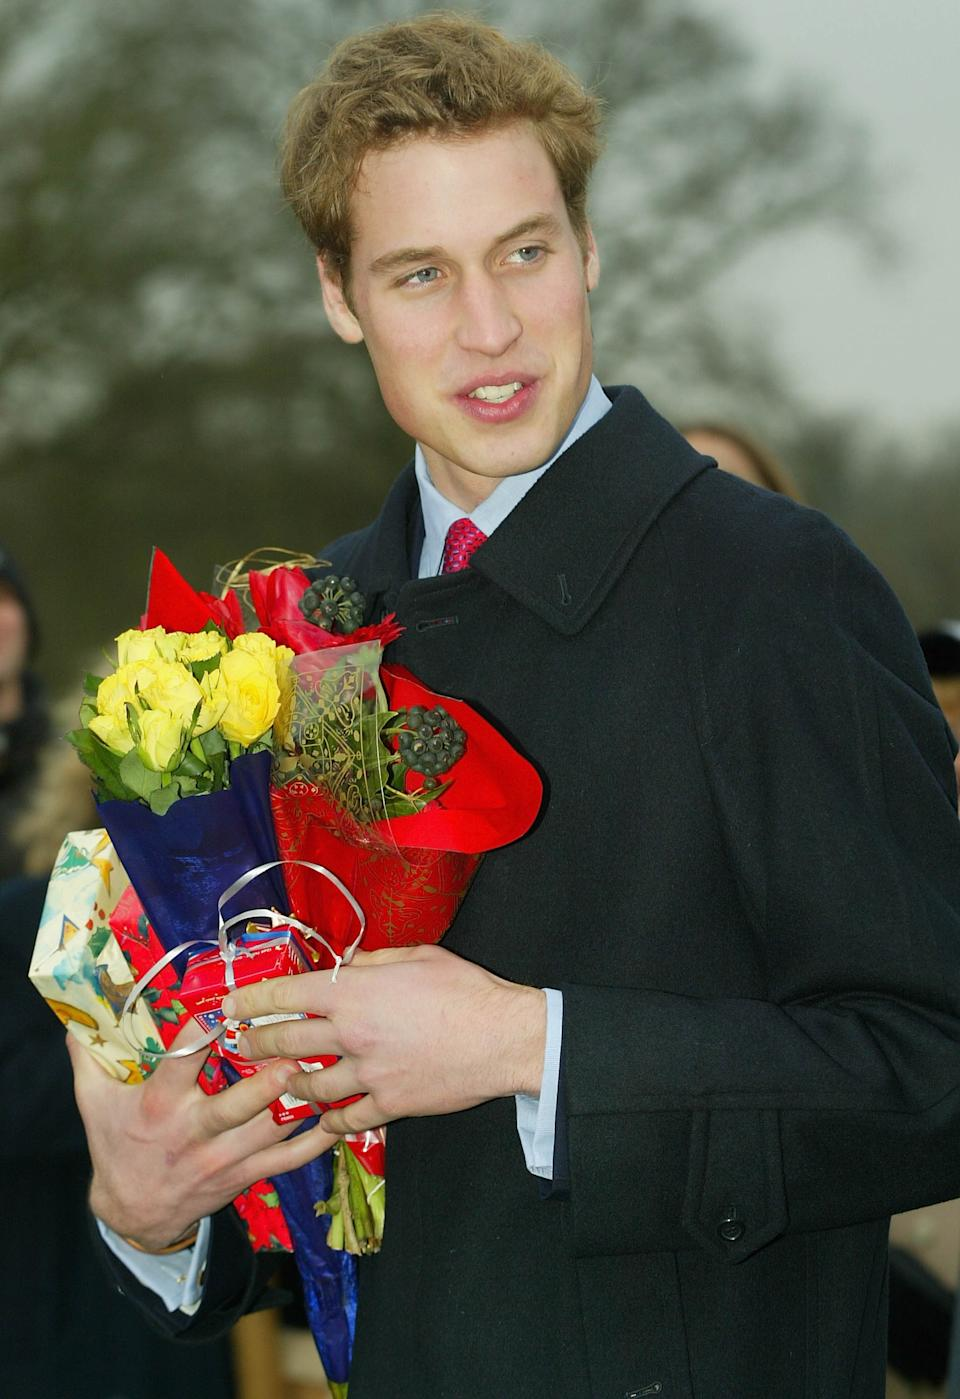 <p>William accepts flowers from a wellwisher as he leaves a Christmas Day service at Sandringham Church December 25, 2002. (Scott Barbour/Getty Images)</p>